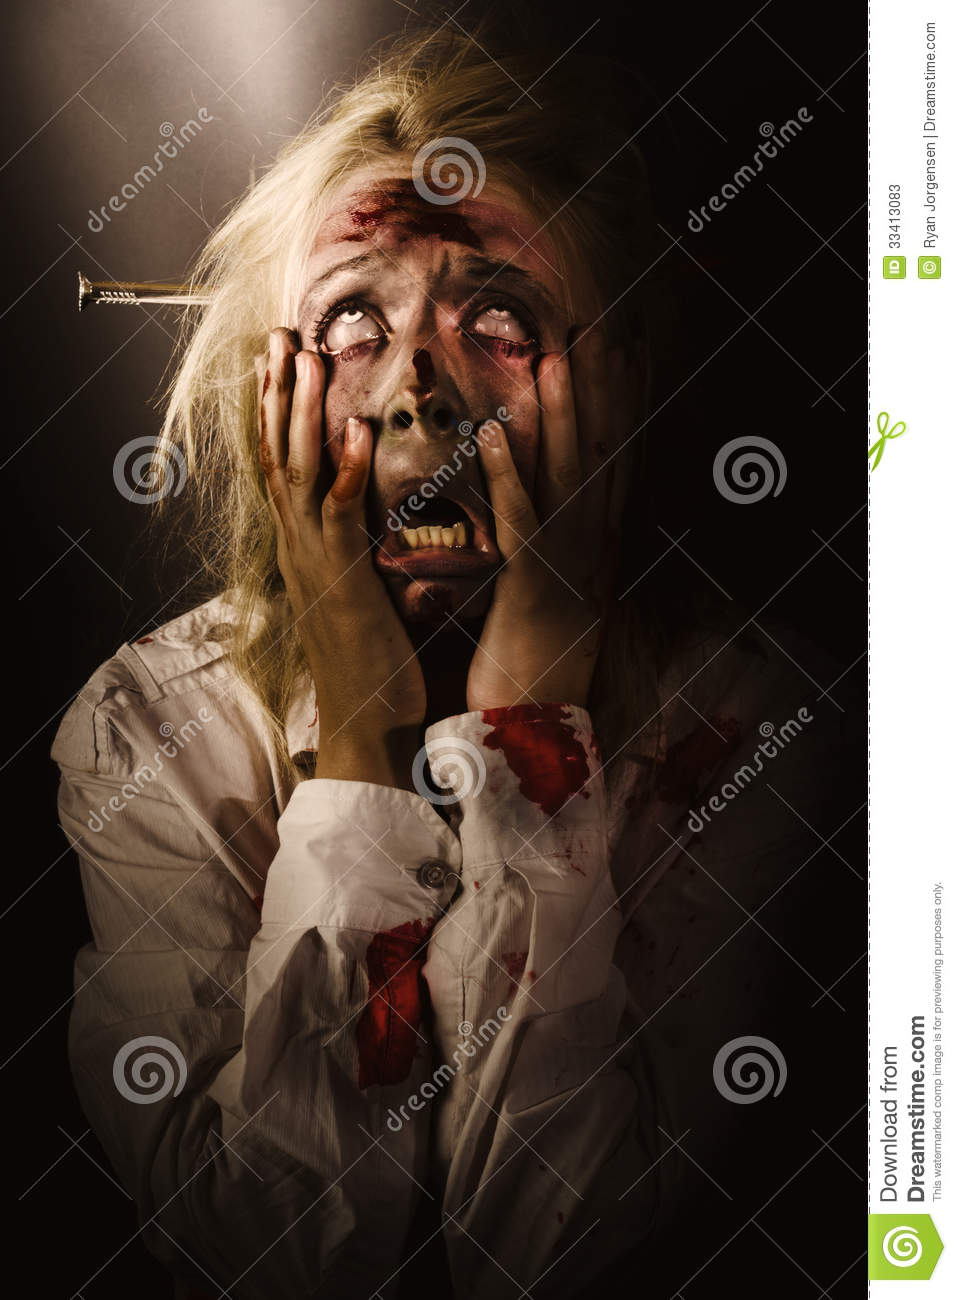 Facing Dark Horror Dying Zombie Screaming In Fear Stock Image